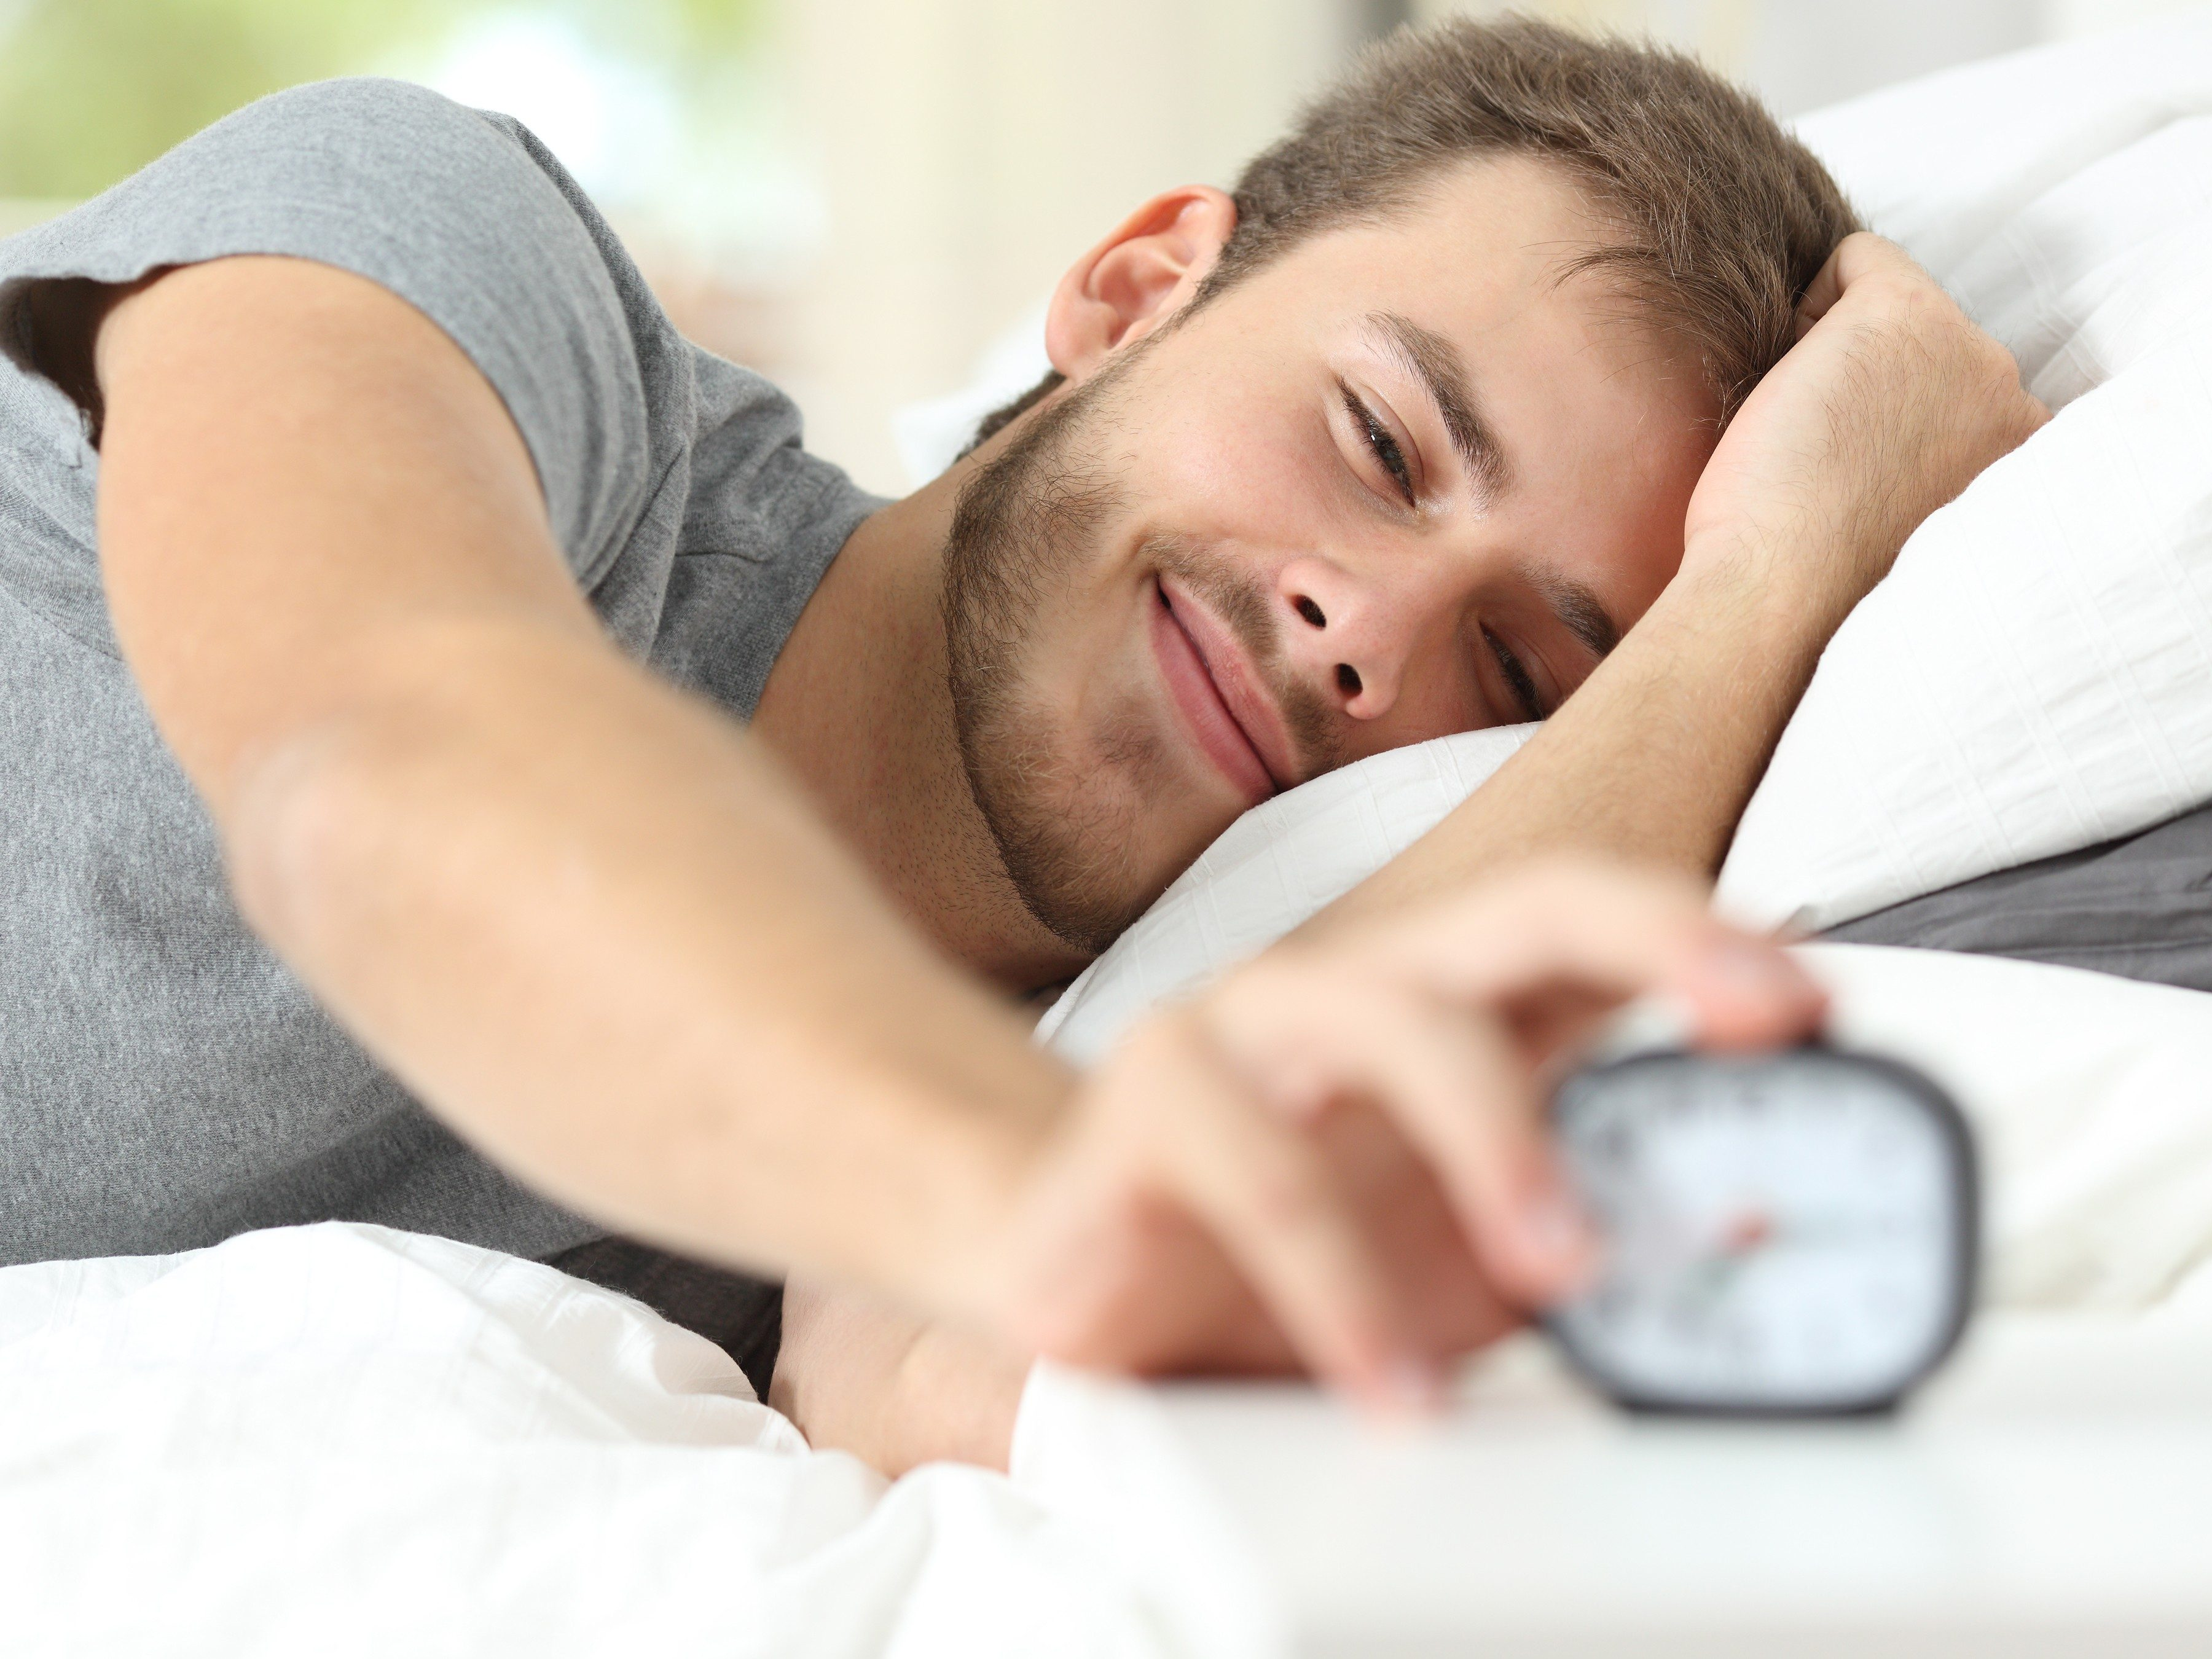 11. Boost energy by getting more sleep.